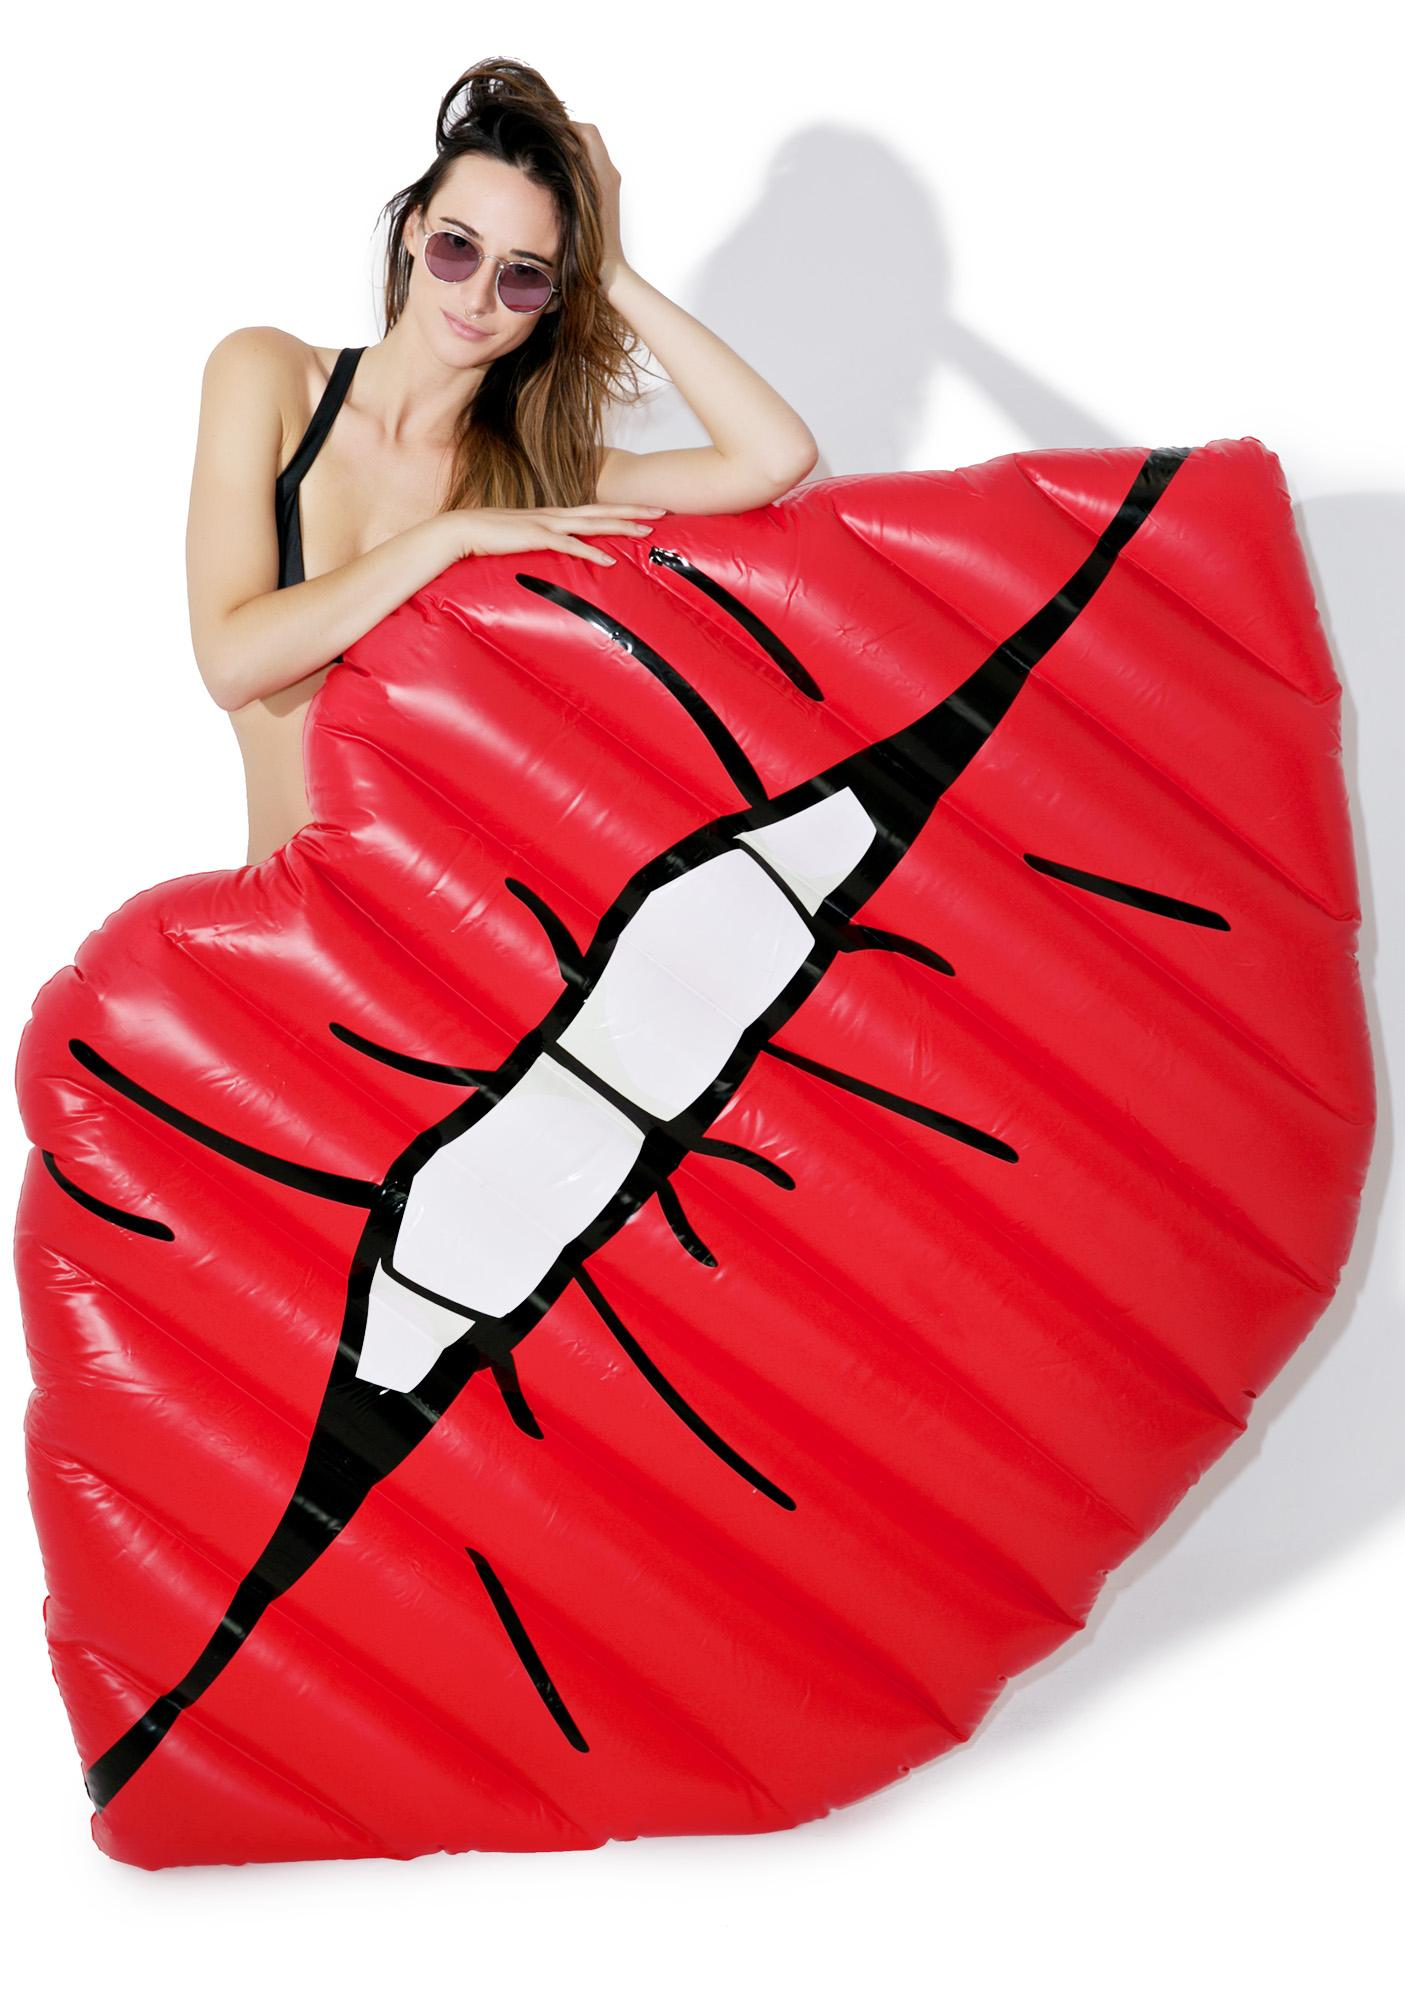 The Pool Room The Bite Me Inflatable